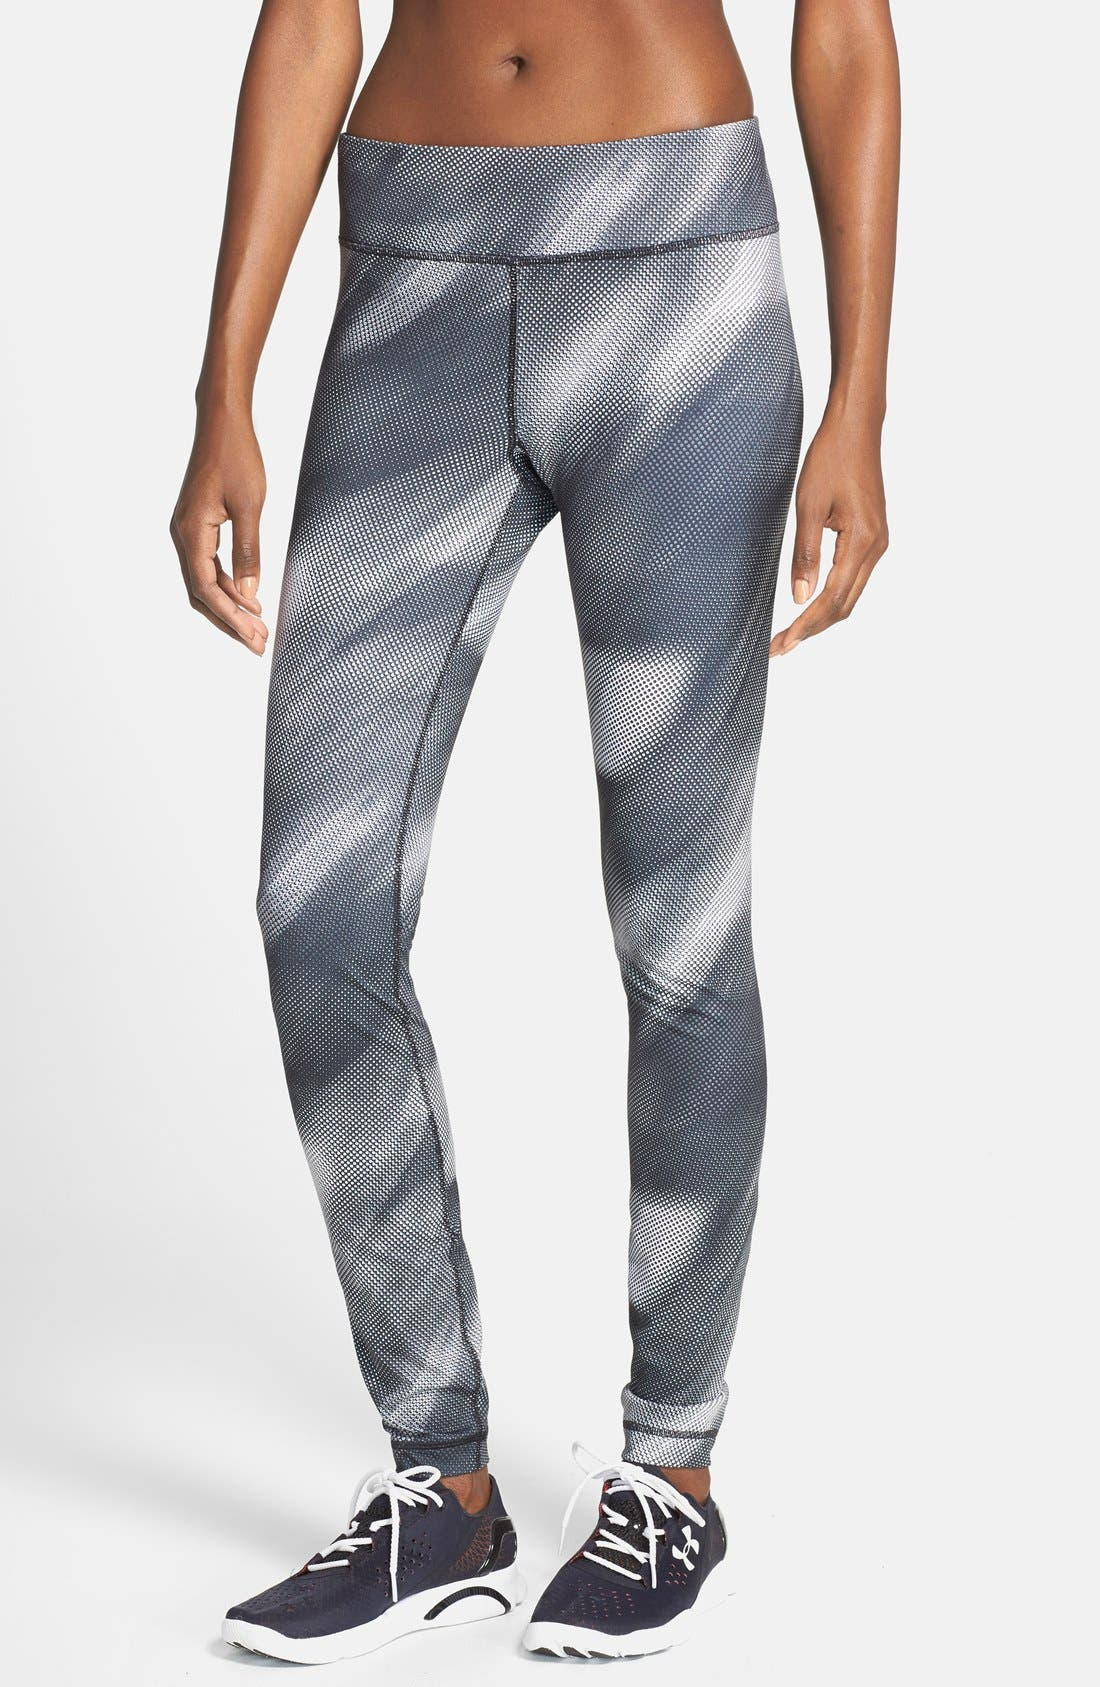 Alternate Image 1 Selected - Under Armour 'Studio' High Rise Leggings